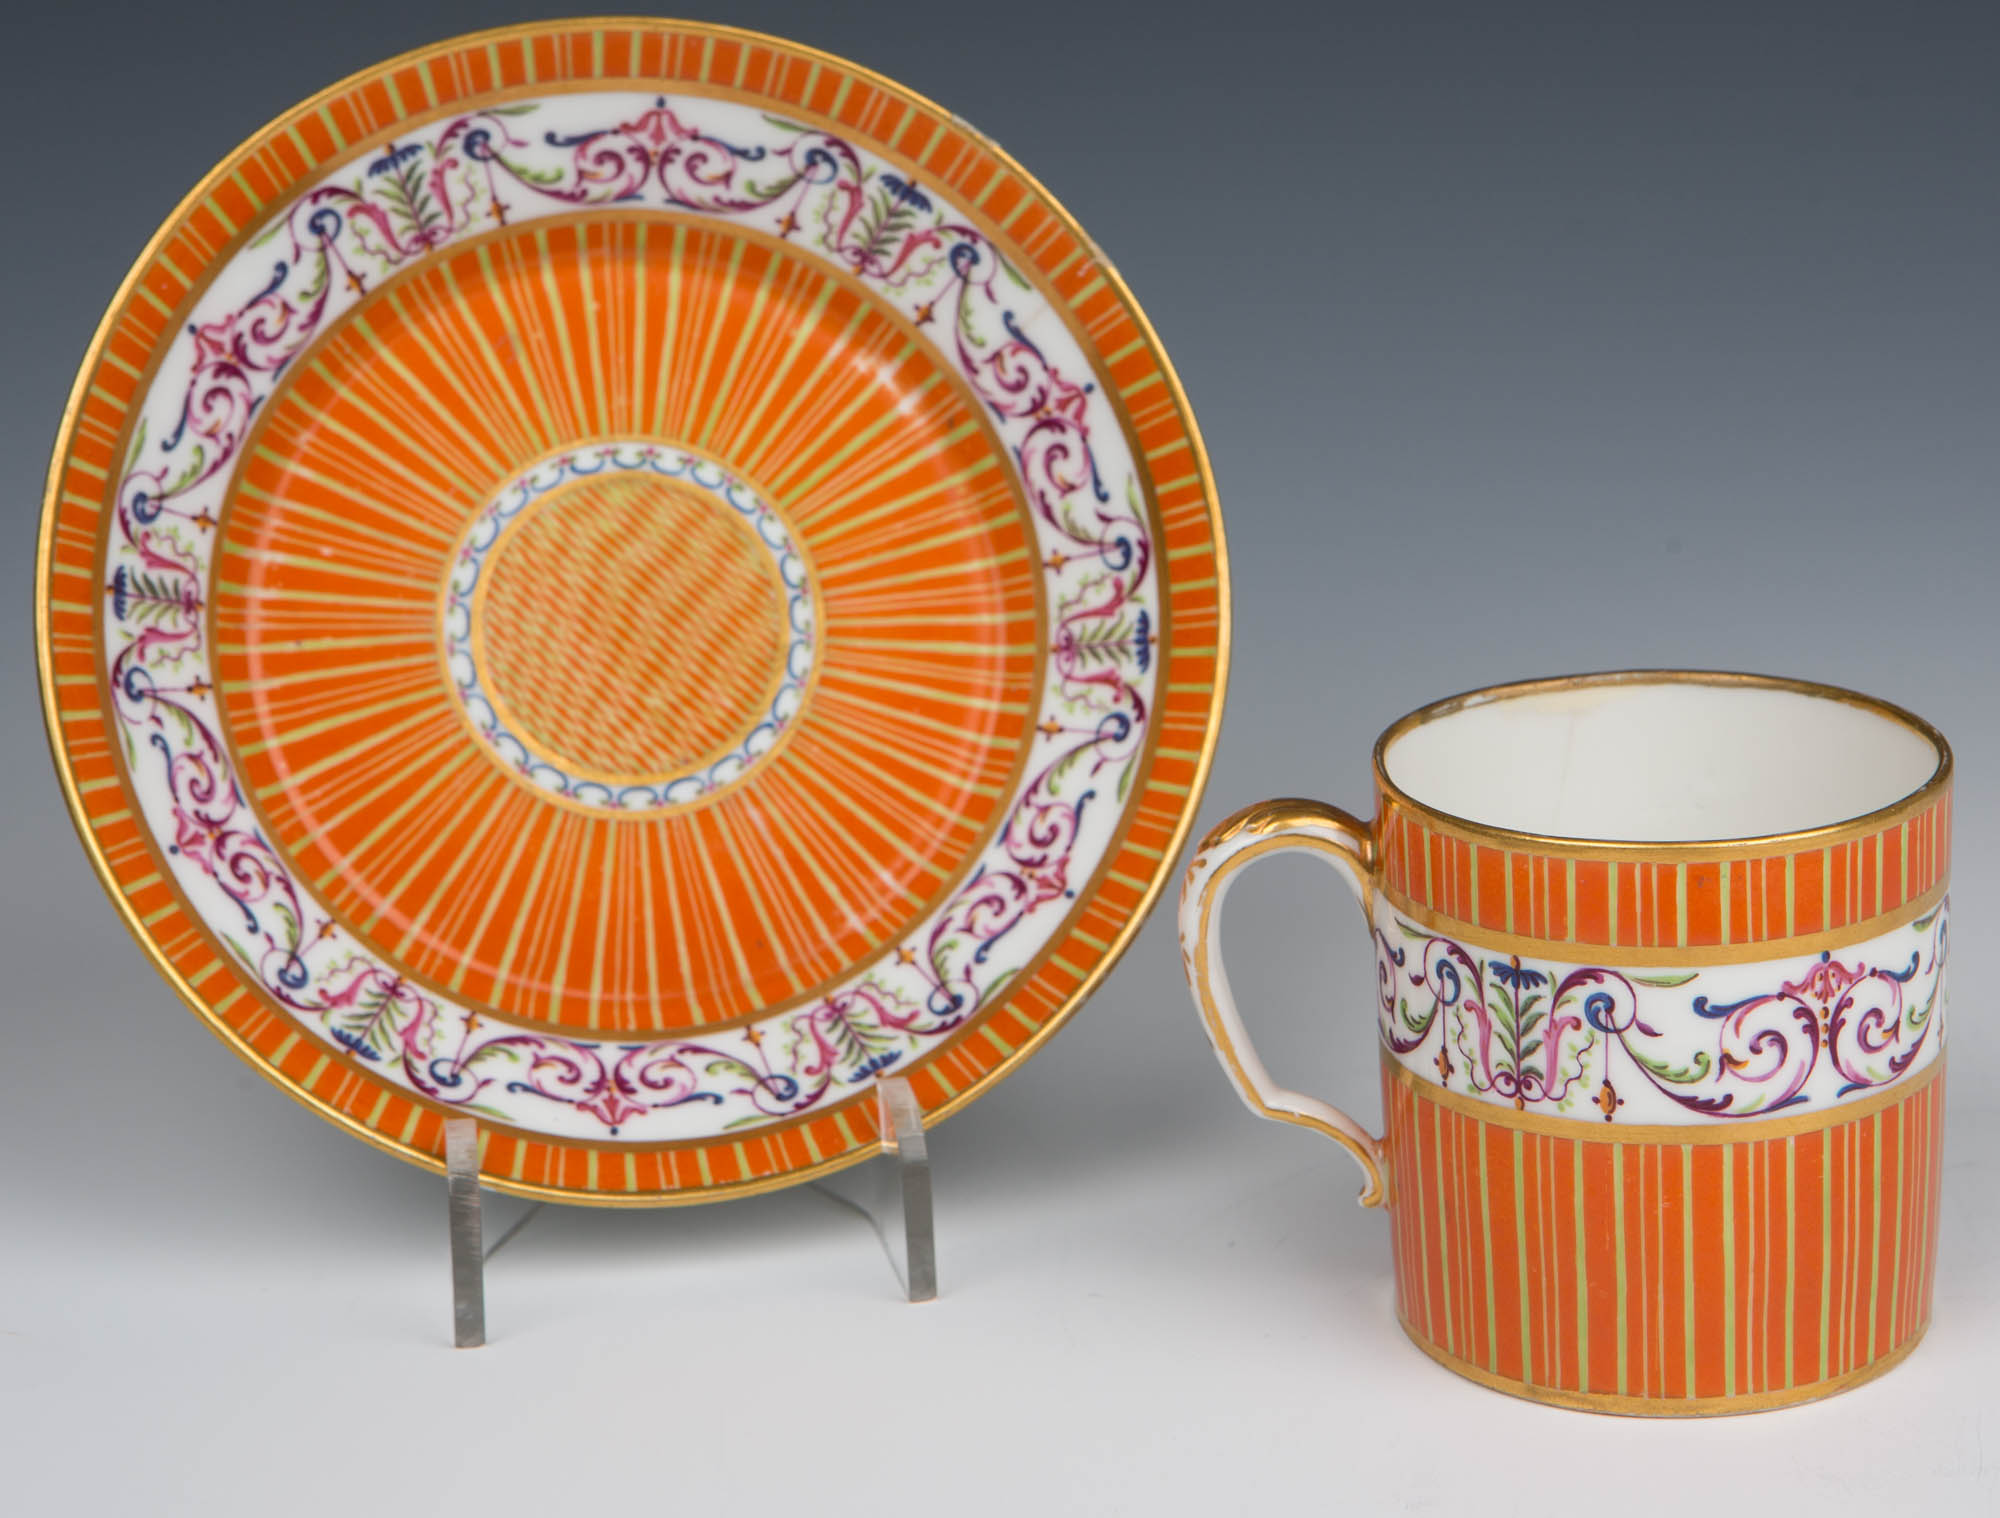 A Sèvres coffee-can and saucer, circa 1780/85.